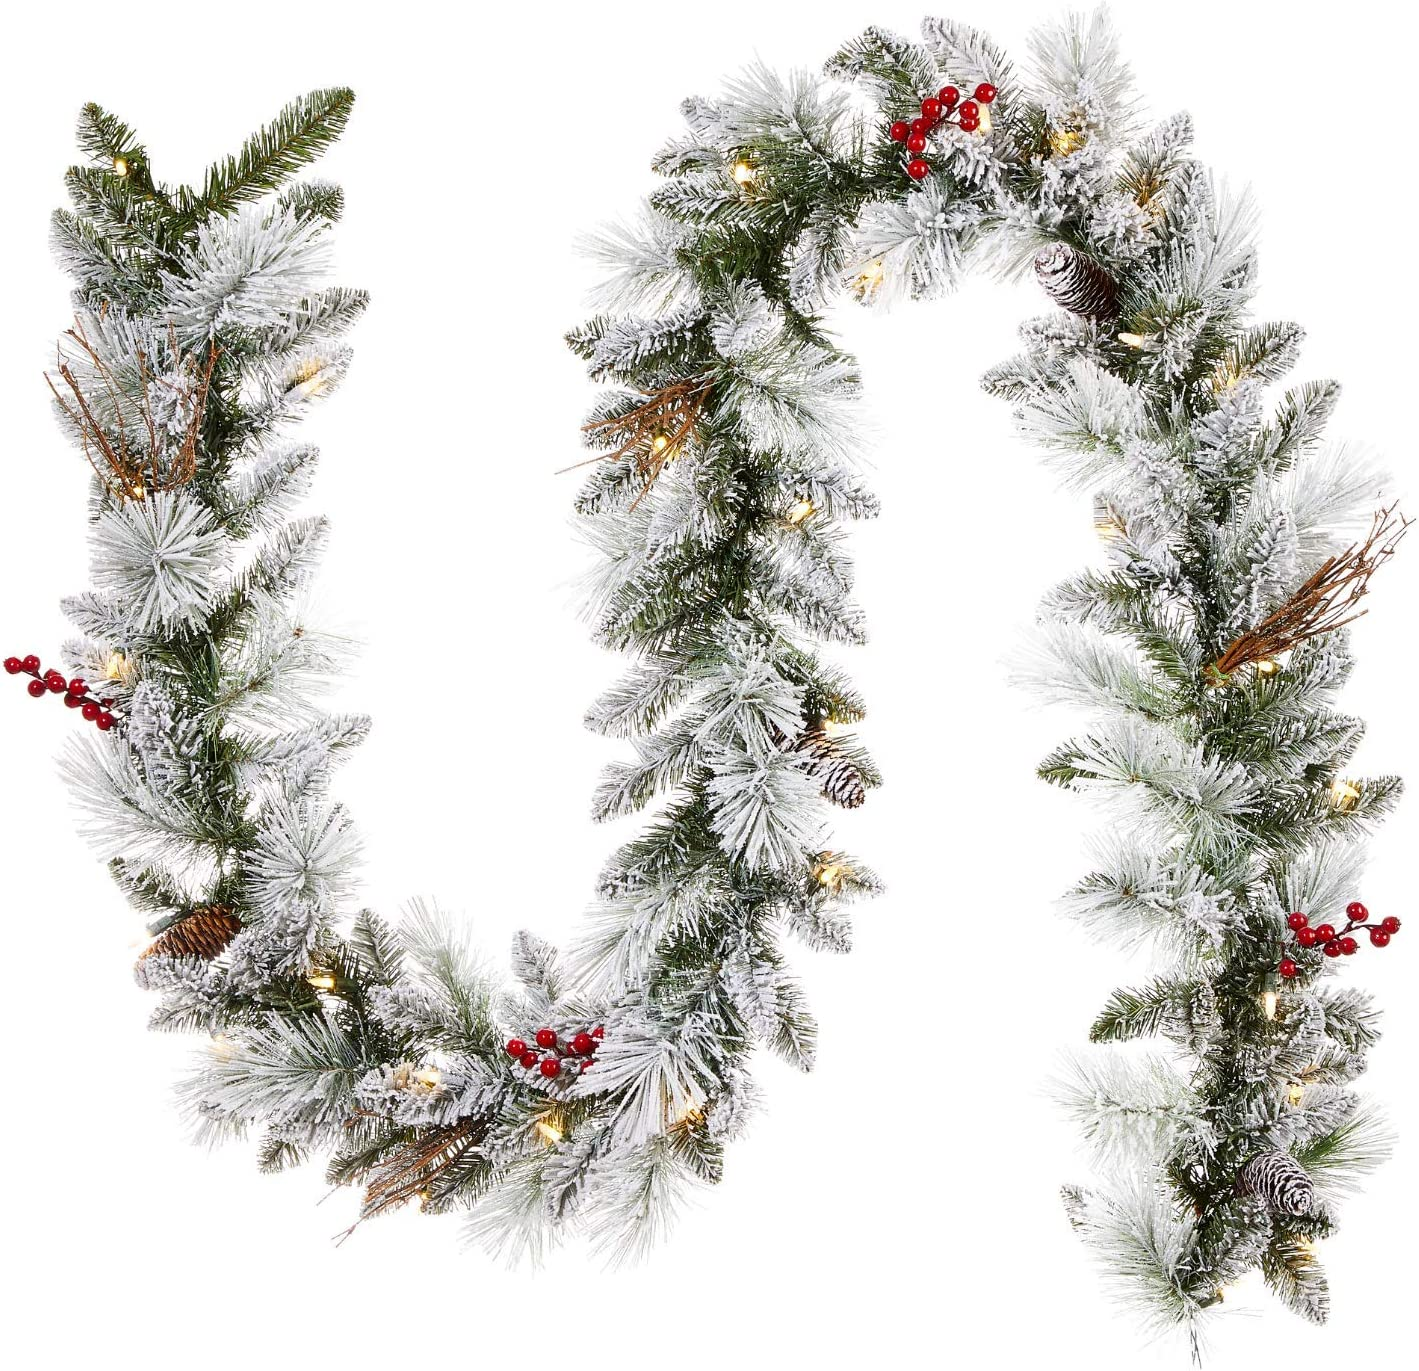 NOMA Pre-lit 9-Ft LED Berry Flocked Christmas Garland with Battery Operated Lights | 35 Warm White Bulbs | 162 Pine Tips